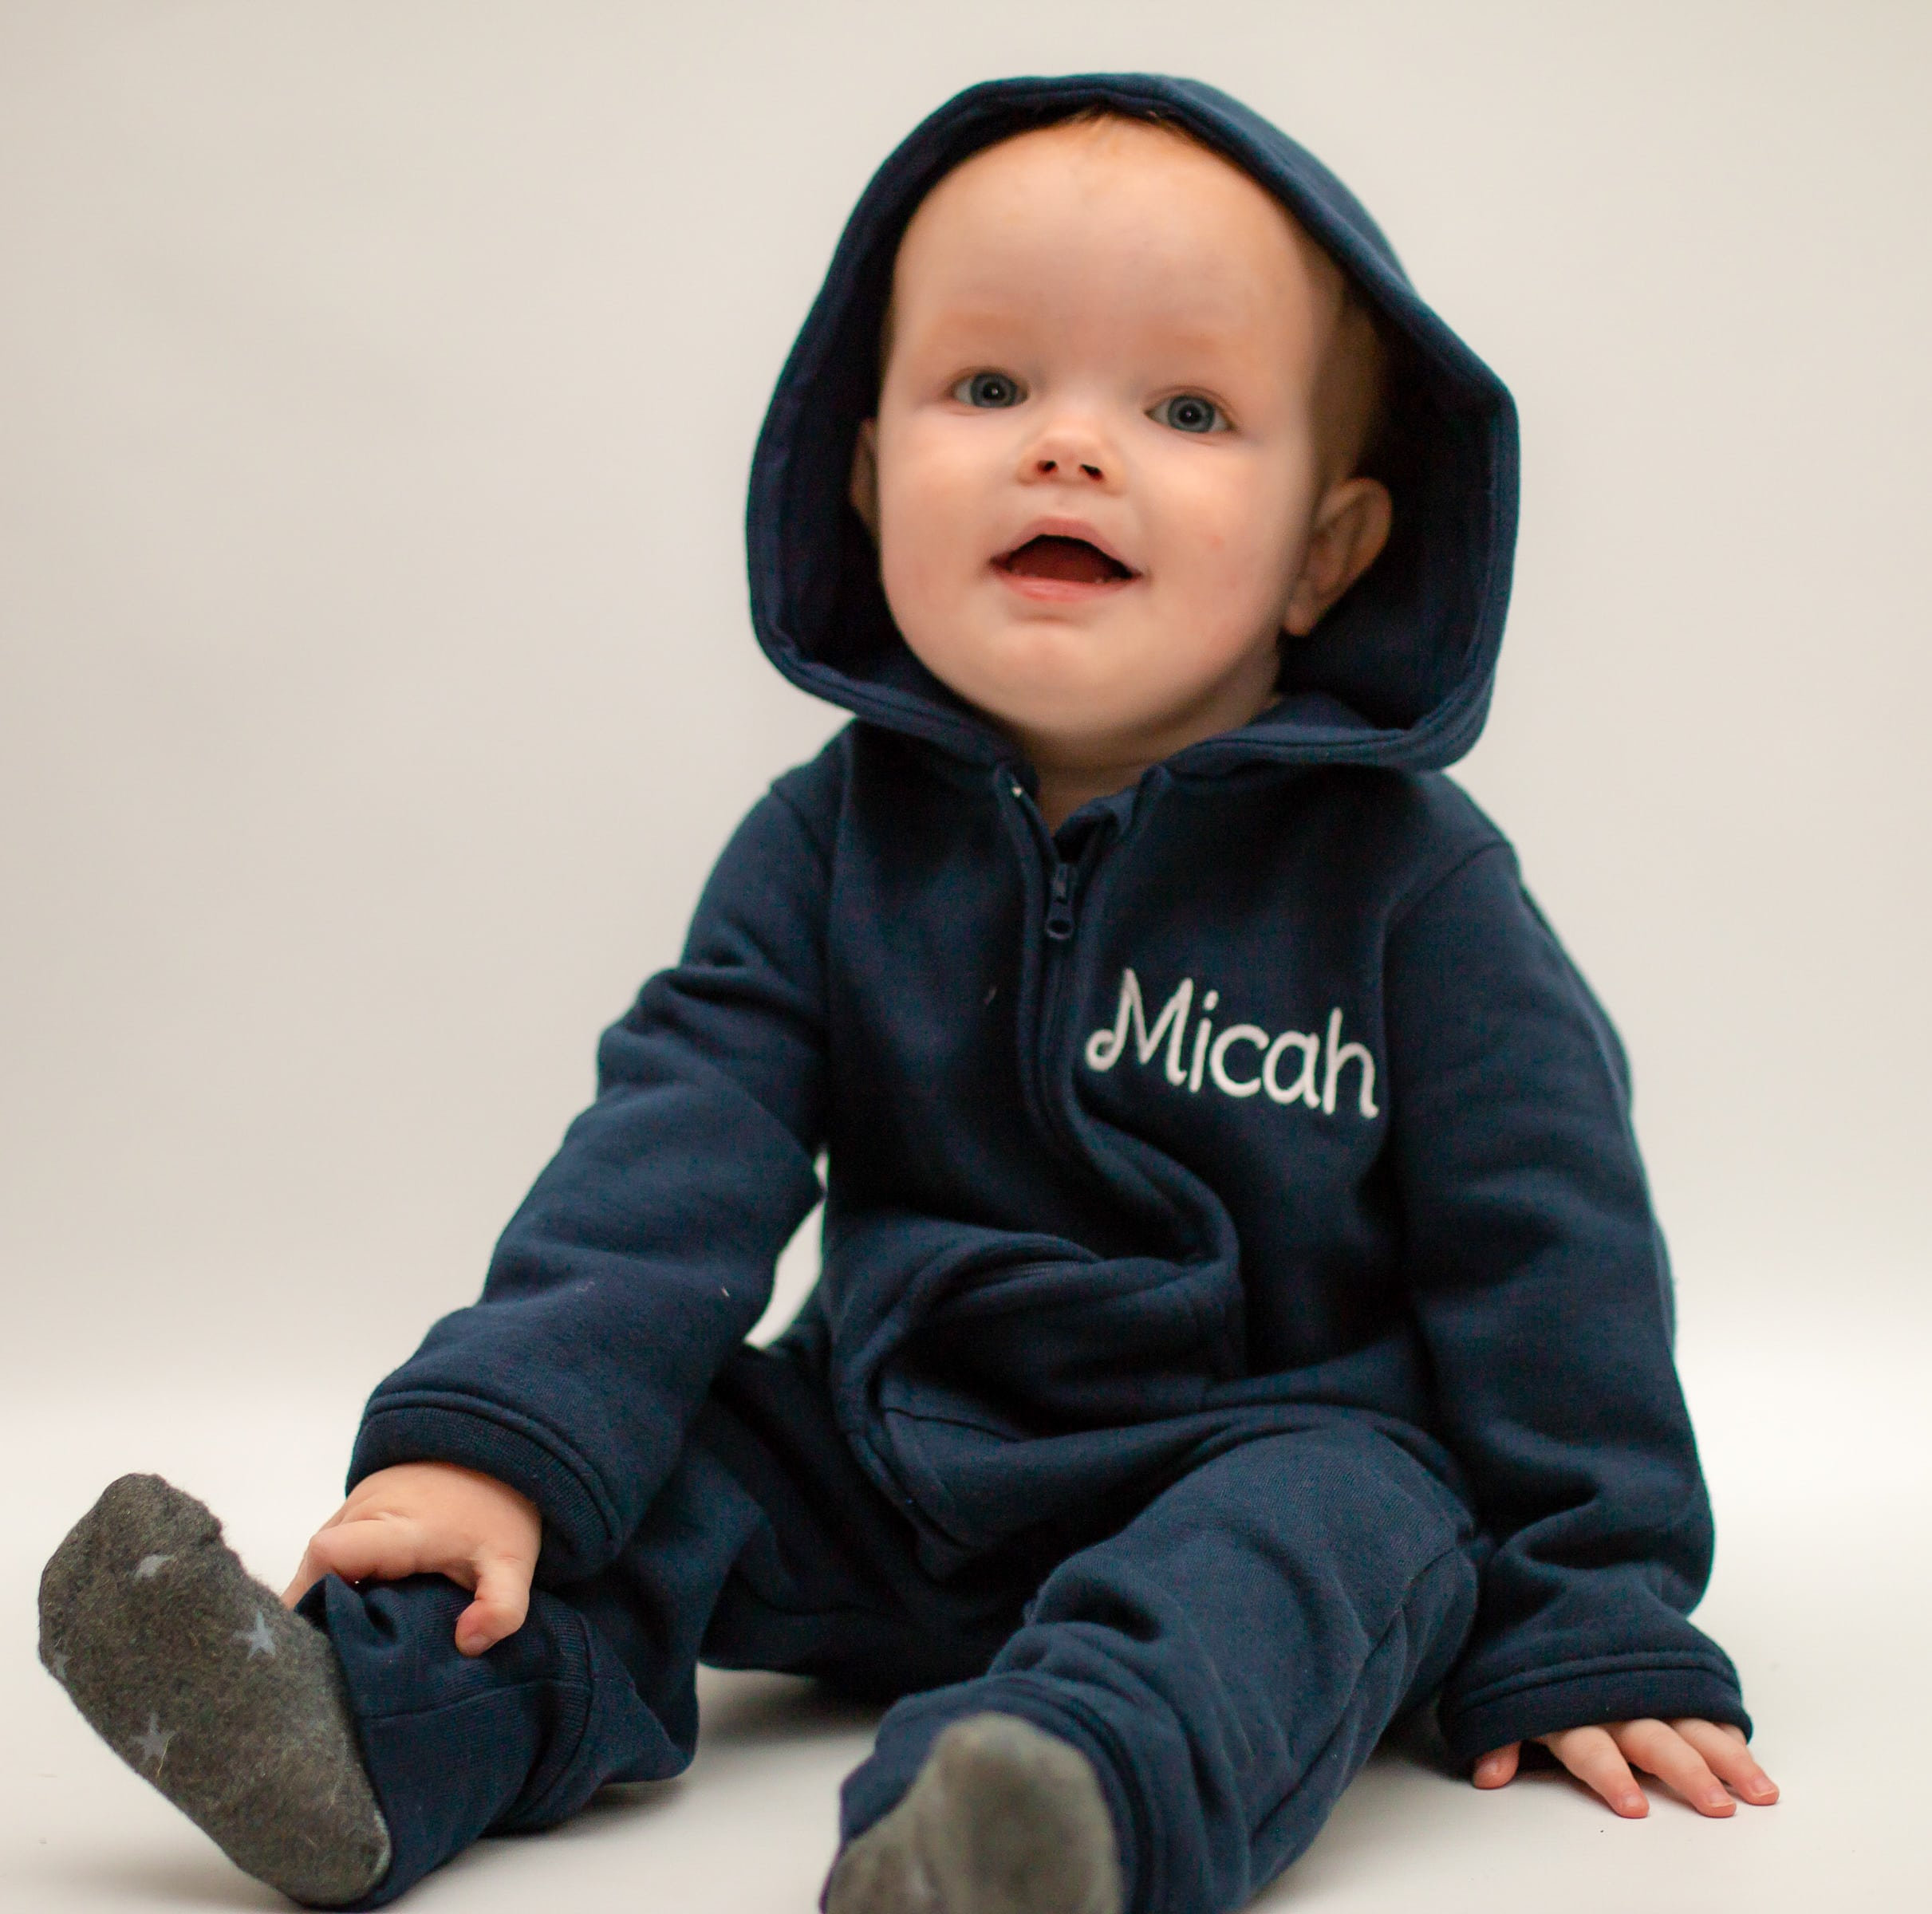 b2399826e063 Personalised Baby   Toddler Onesie - Navy